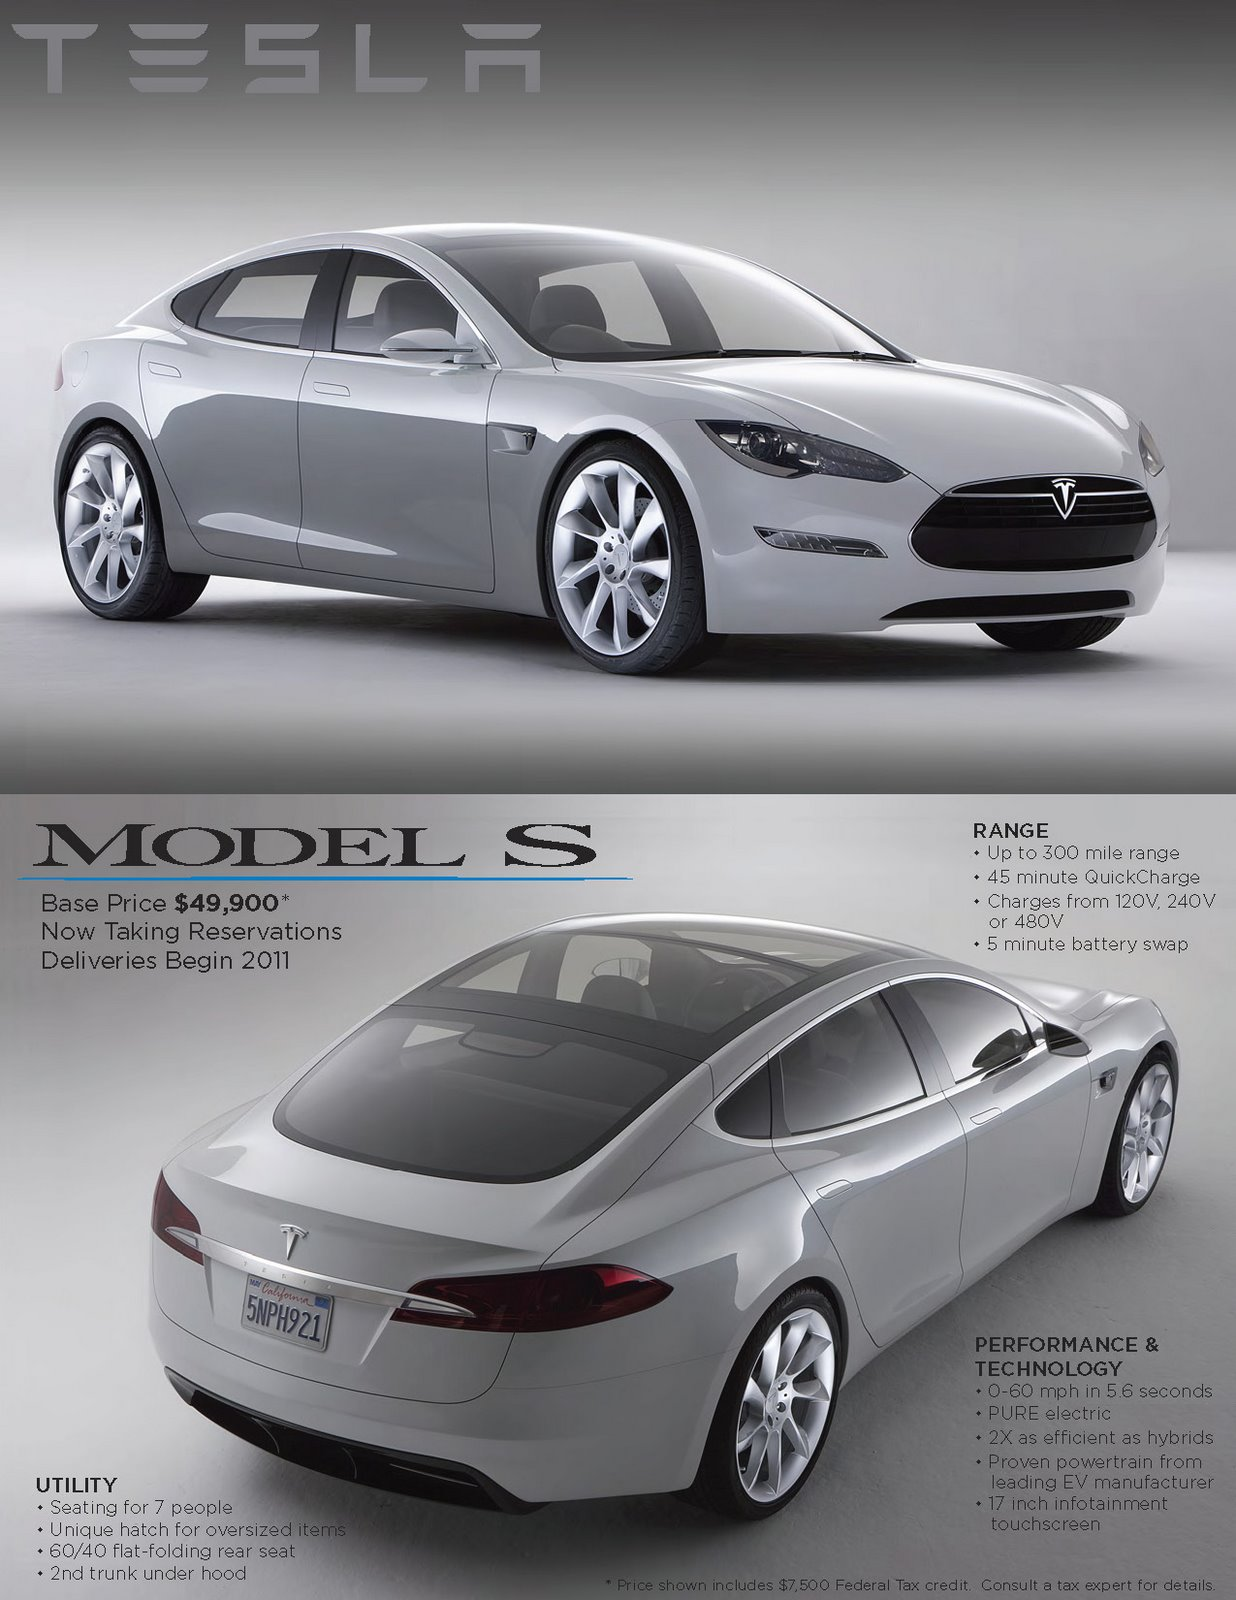 Car Reviews Tesla Model S Electric Sport Sedan High Res Gallery And Official Details